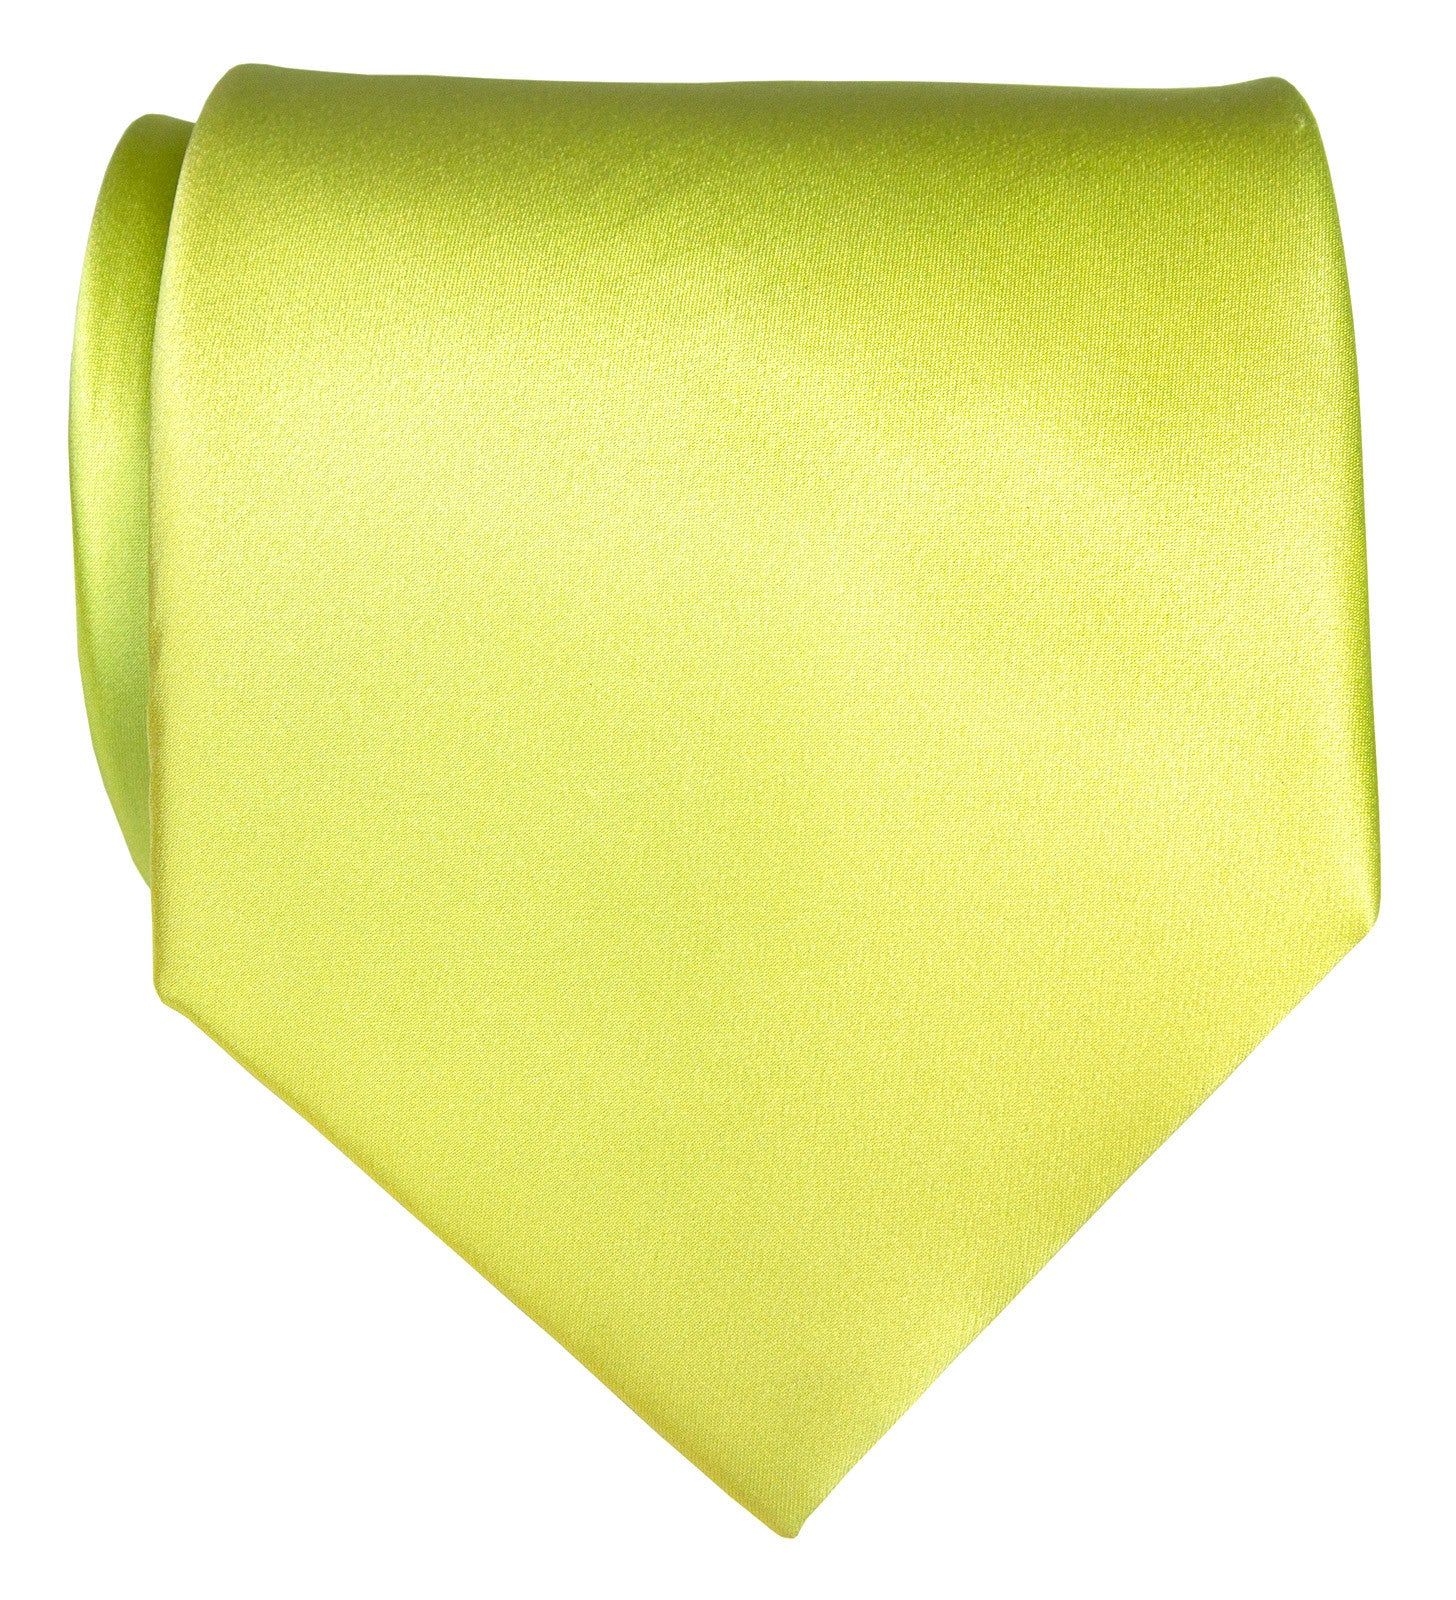 Chartreuse Necktie Yellow Green Solid Color Satin Finish Tie No